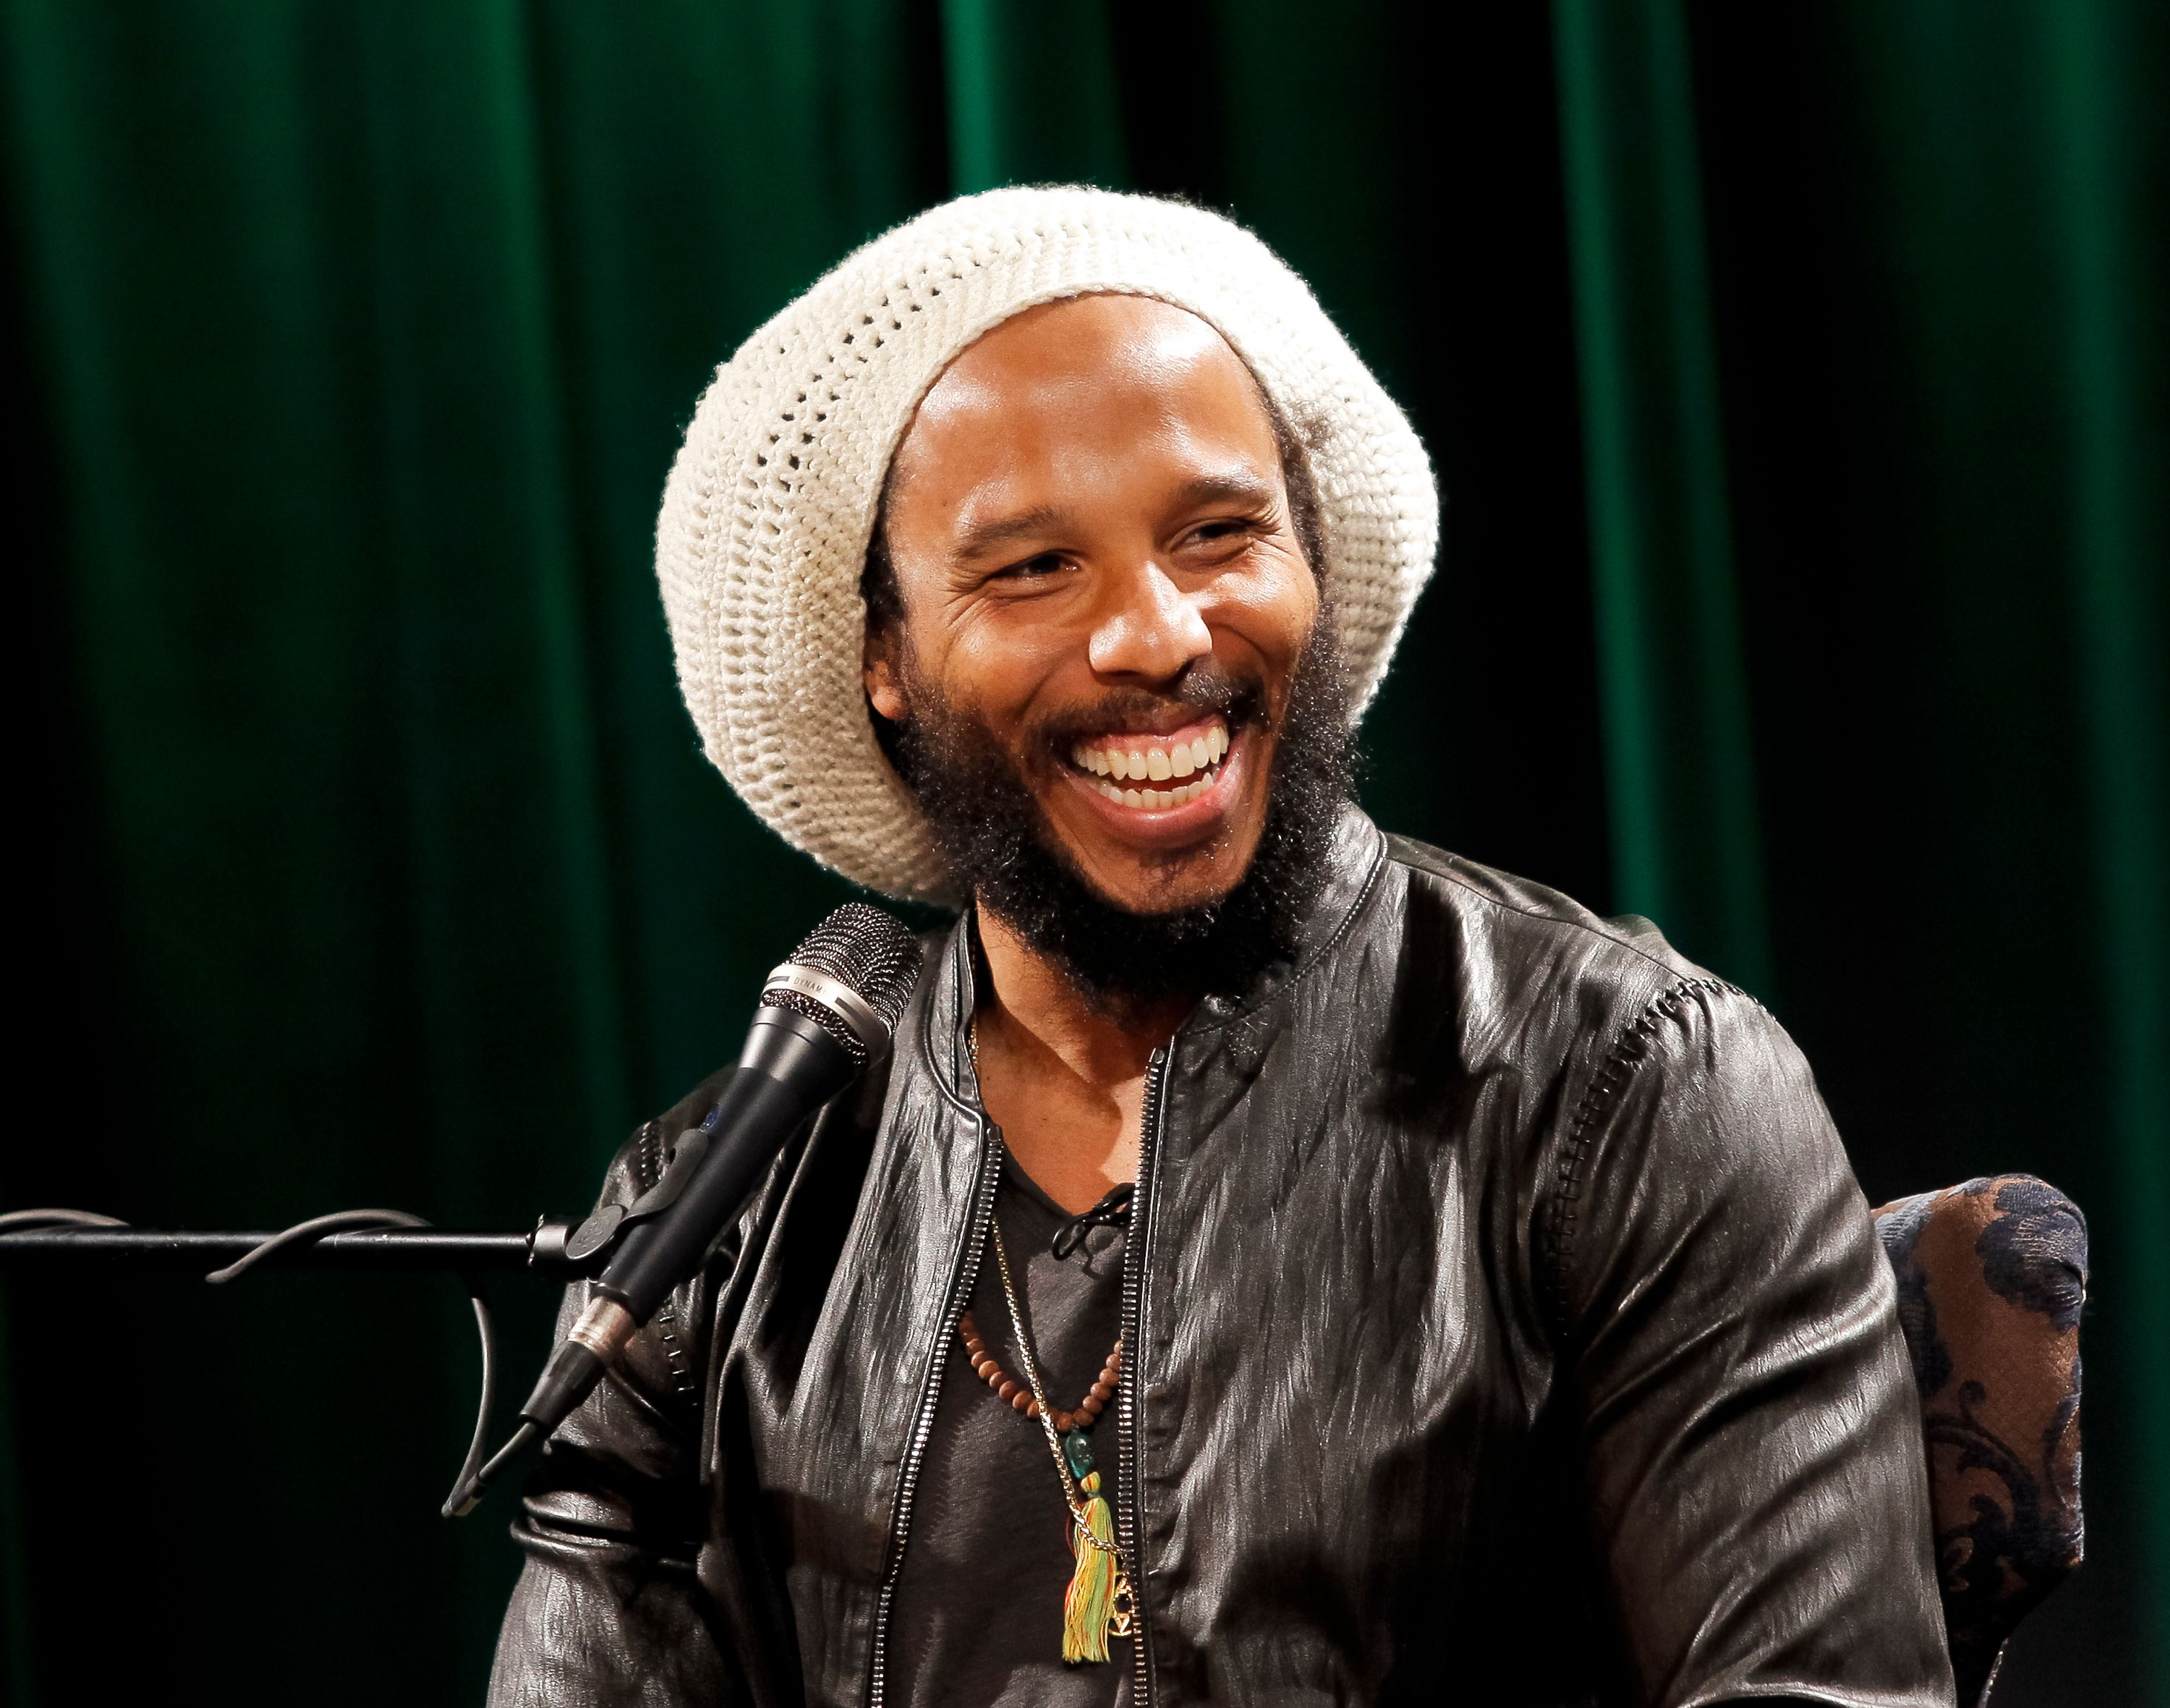 """Ziggy Marley at the Q&A and screening for the film """"Bob Marley & The Wailers: Easy Skanking in Boston '78"""" on February 18, 2015. 